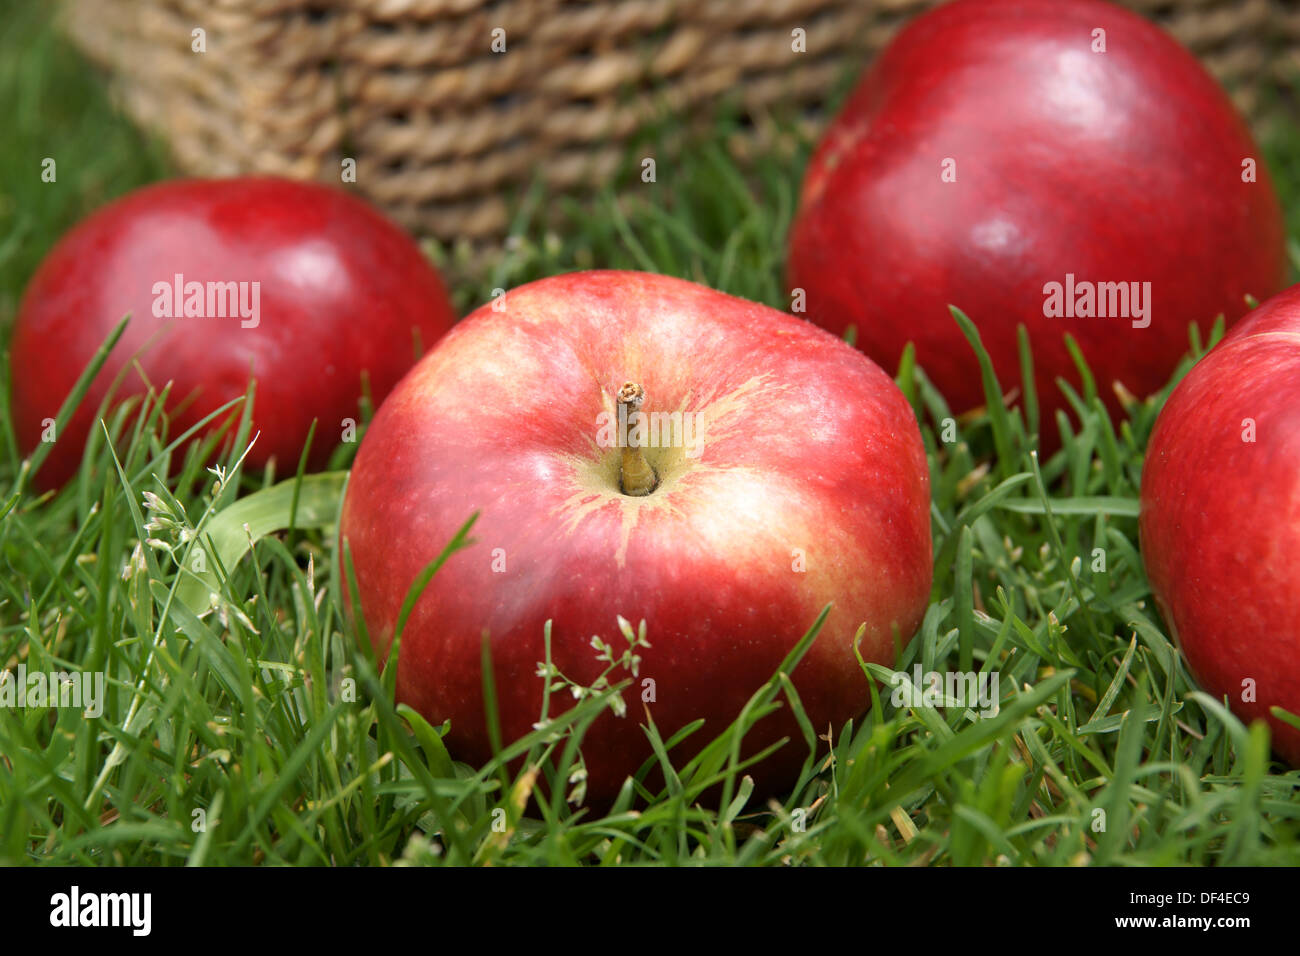 Red shiny Discovery apples freshly harvested - Stock Image